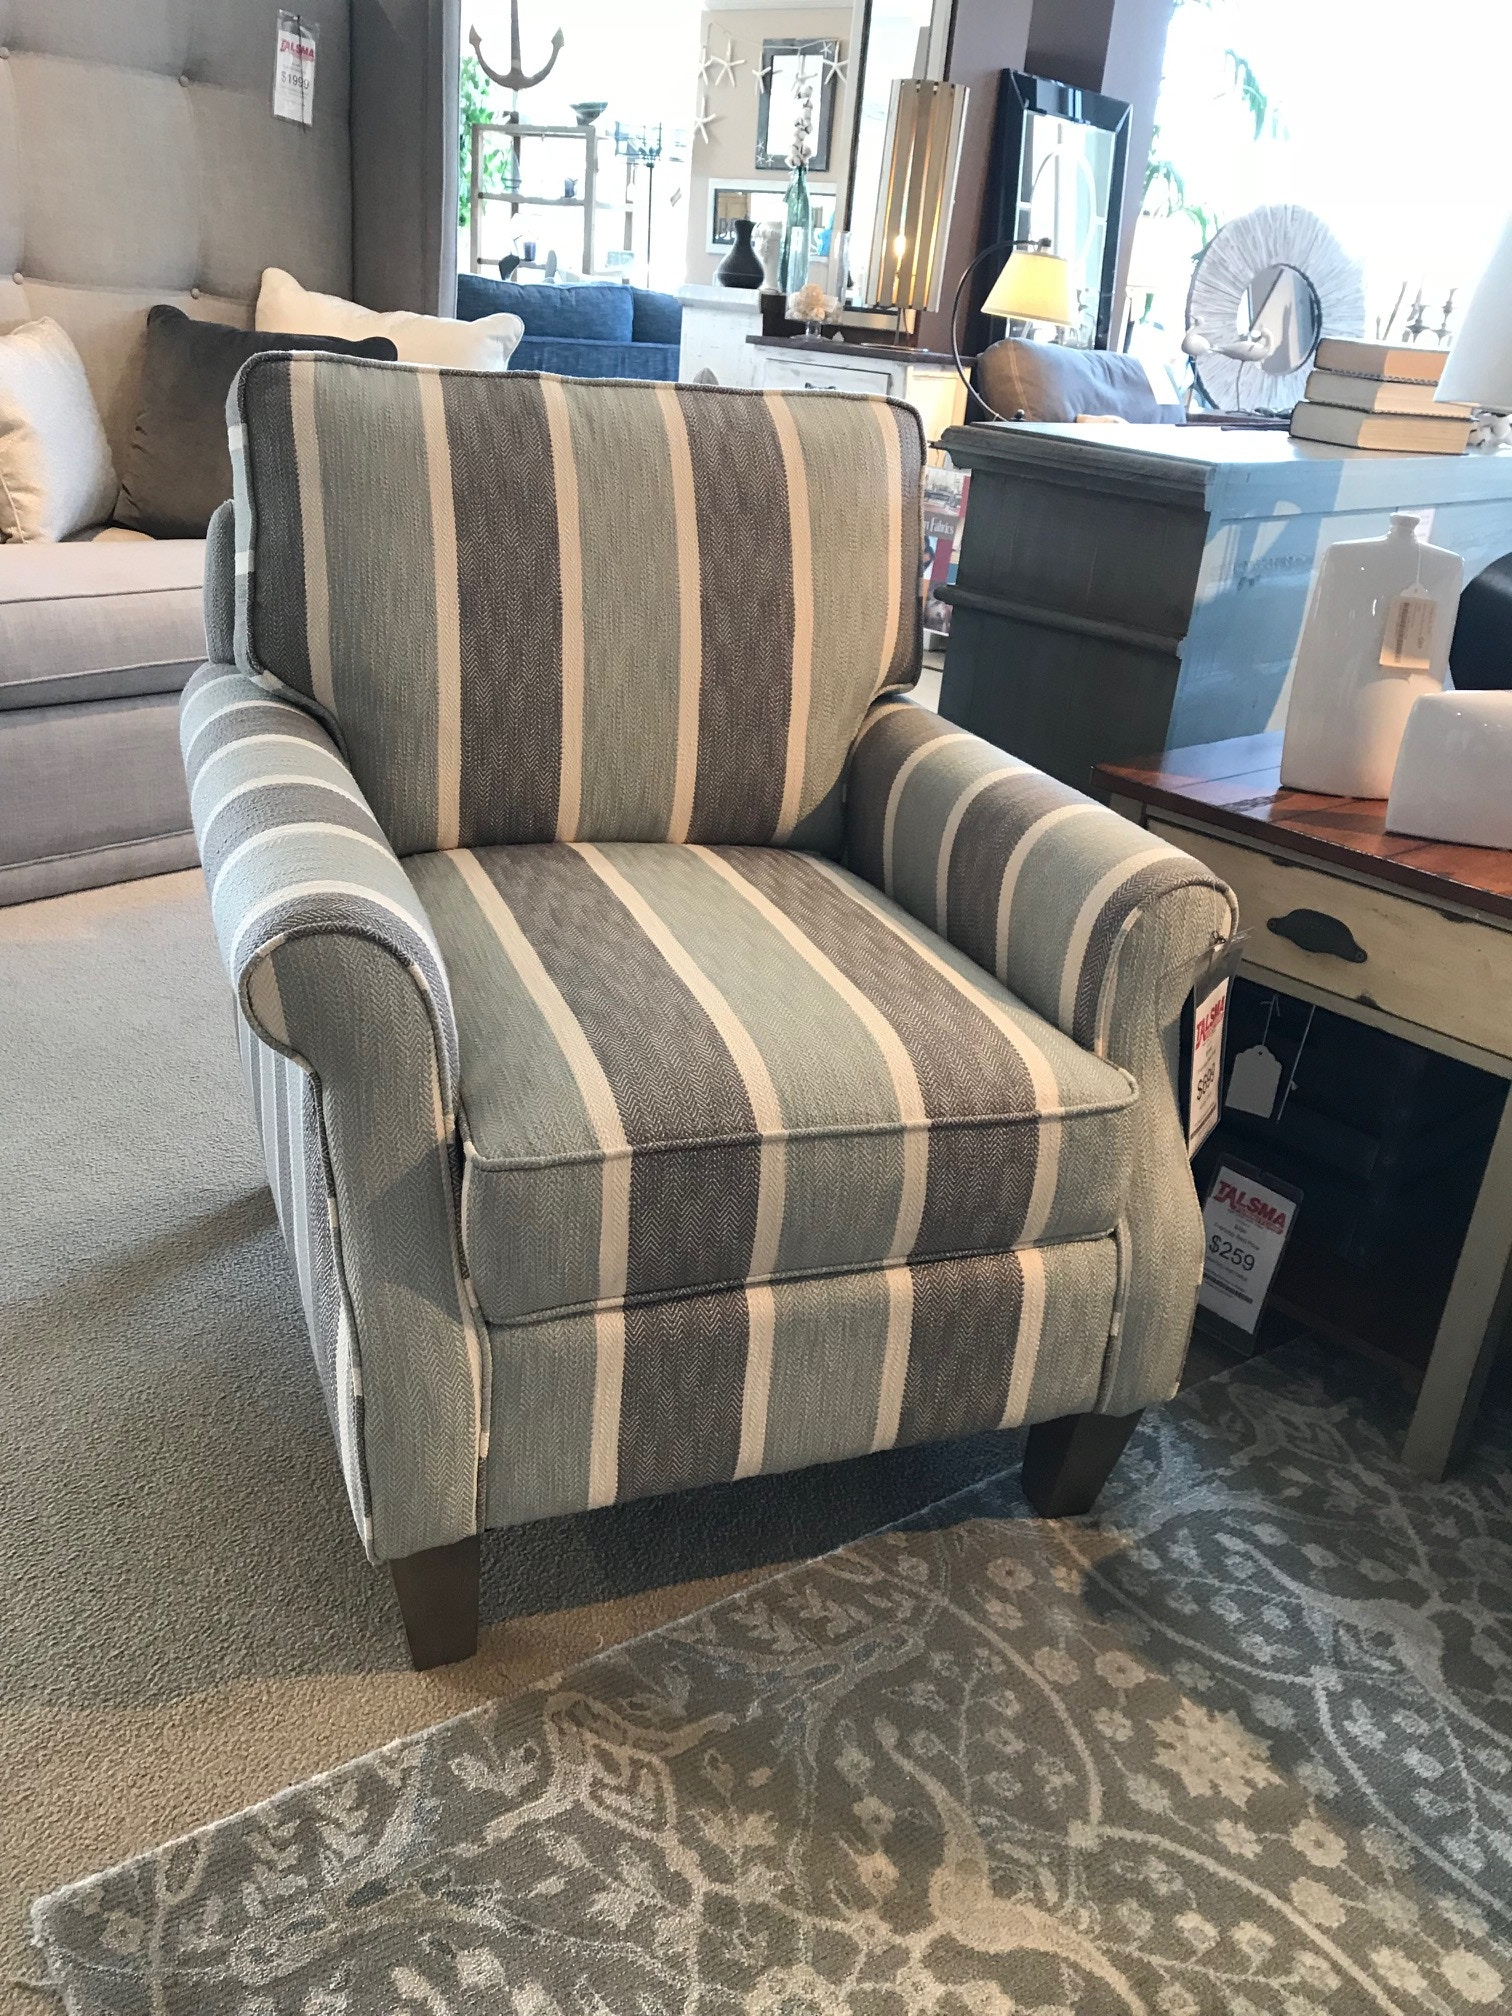 Cozy Life Living Room Chair 738676 At Talsma Furniture